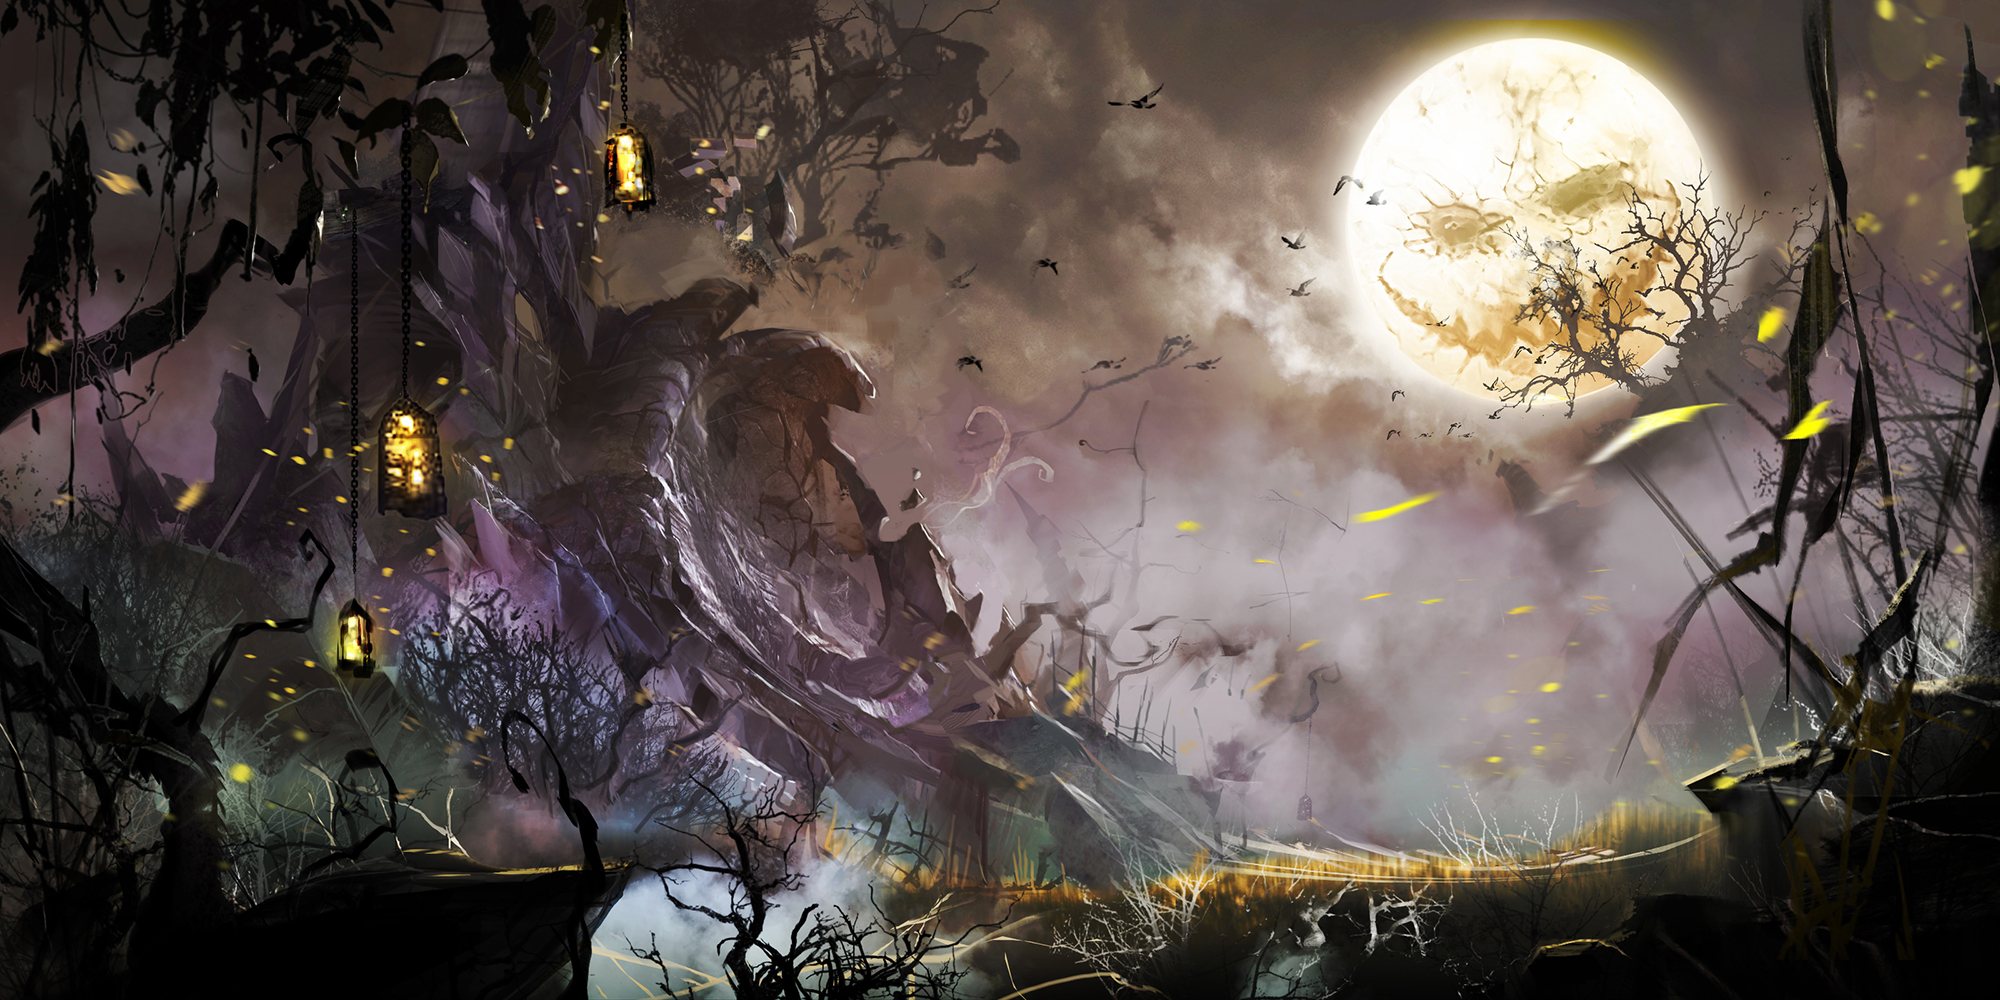 guild wars 2 halloween event kicks off october 22, teases mad king's